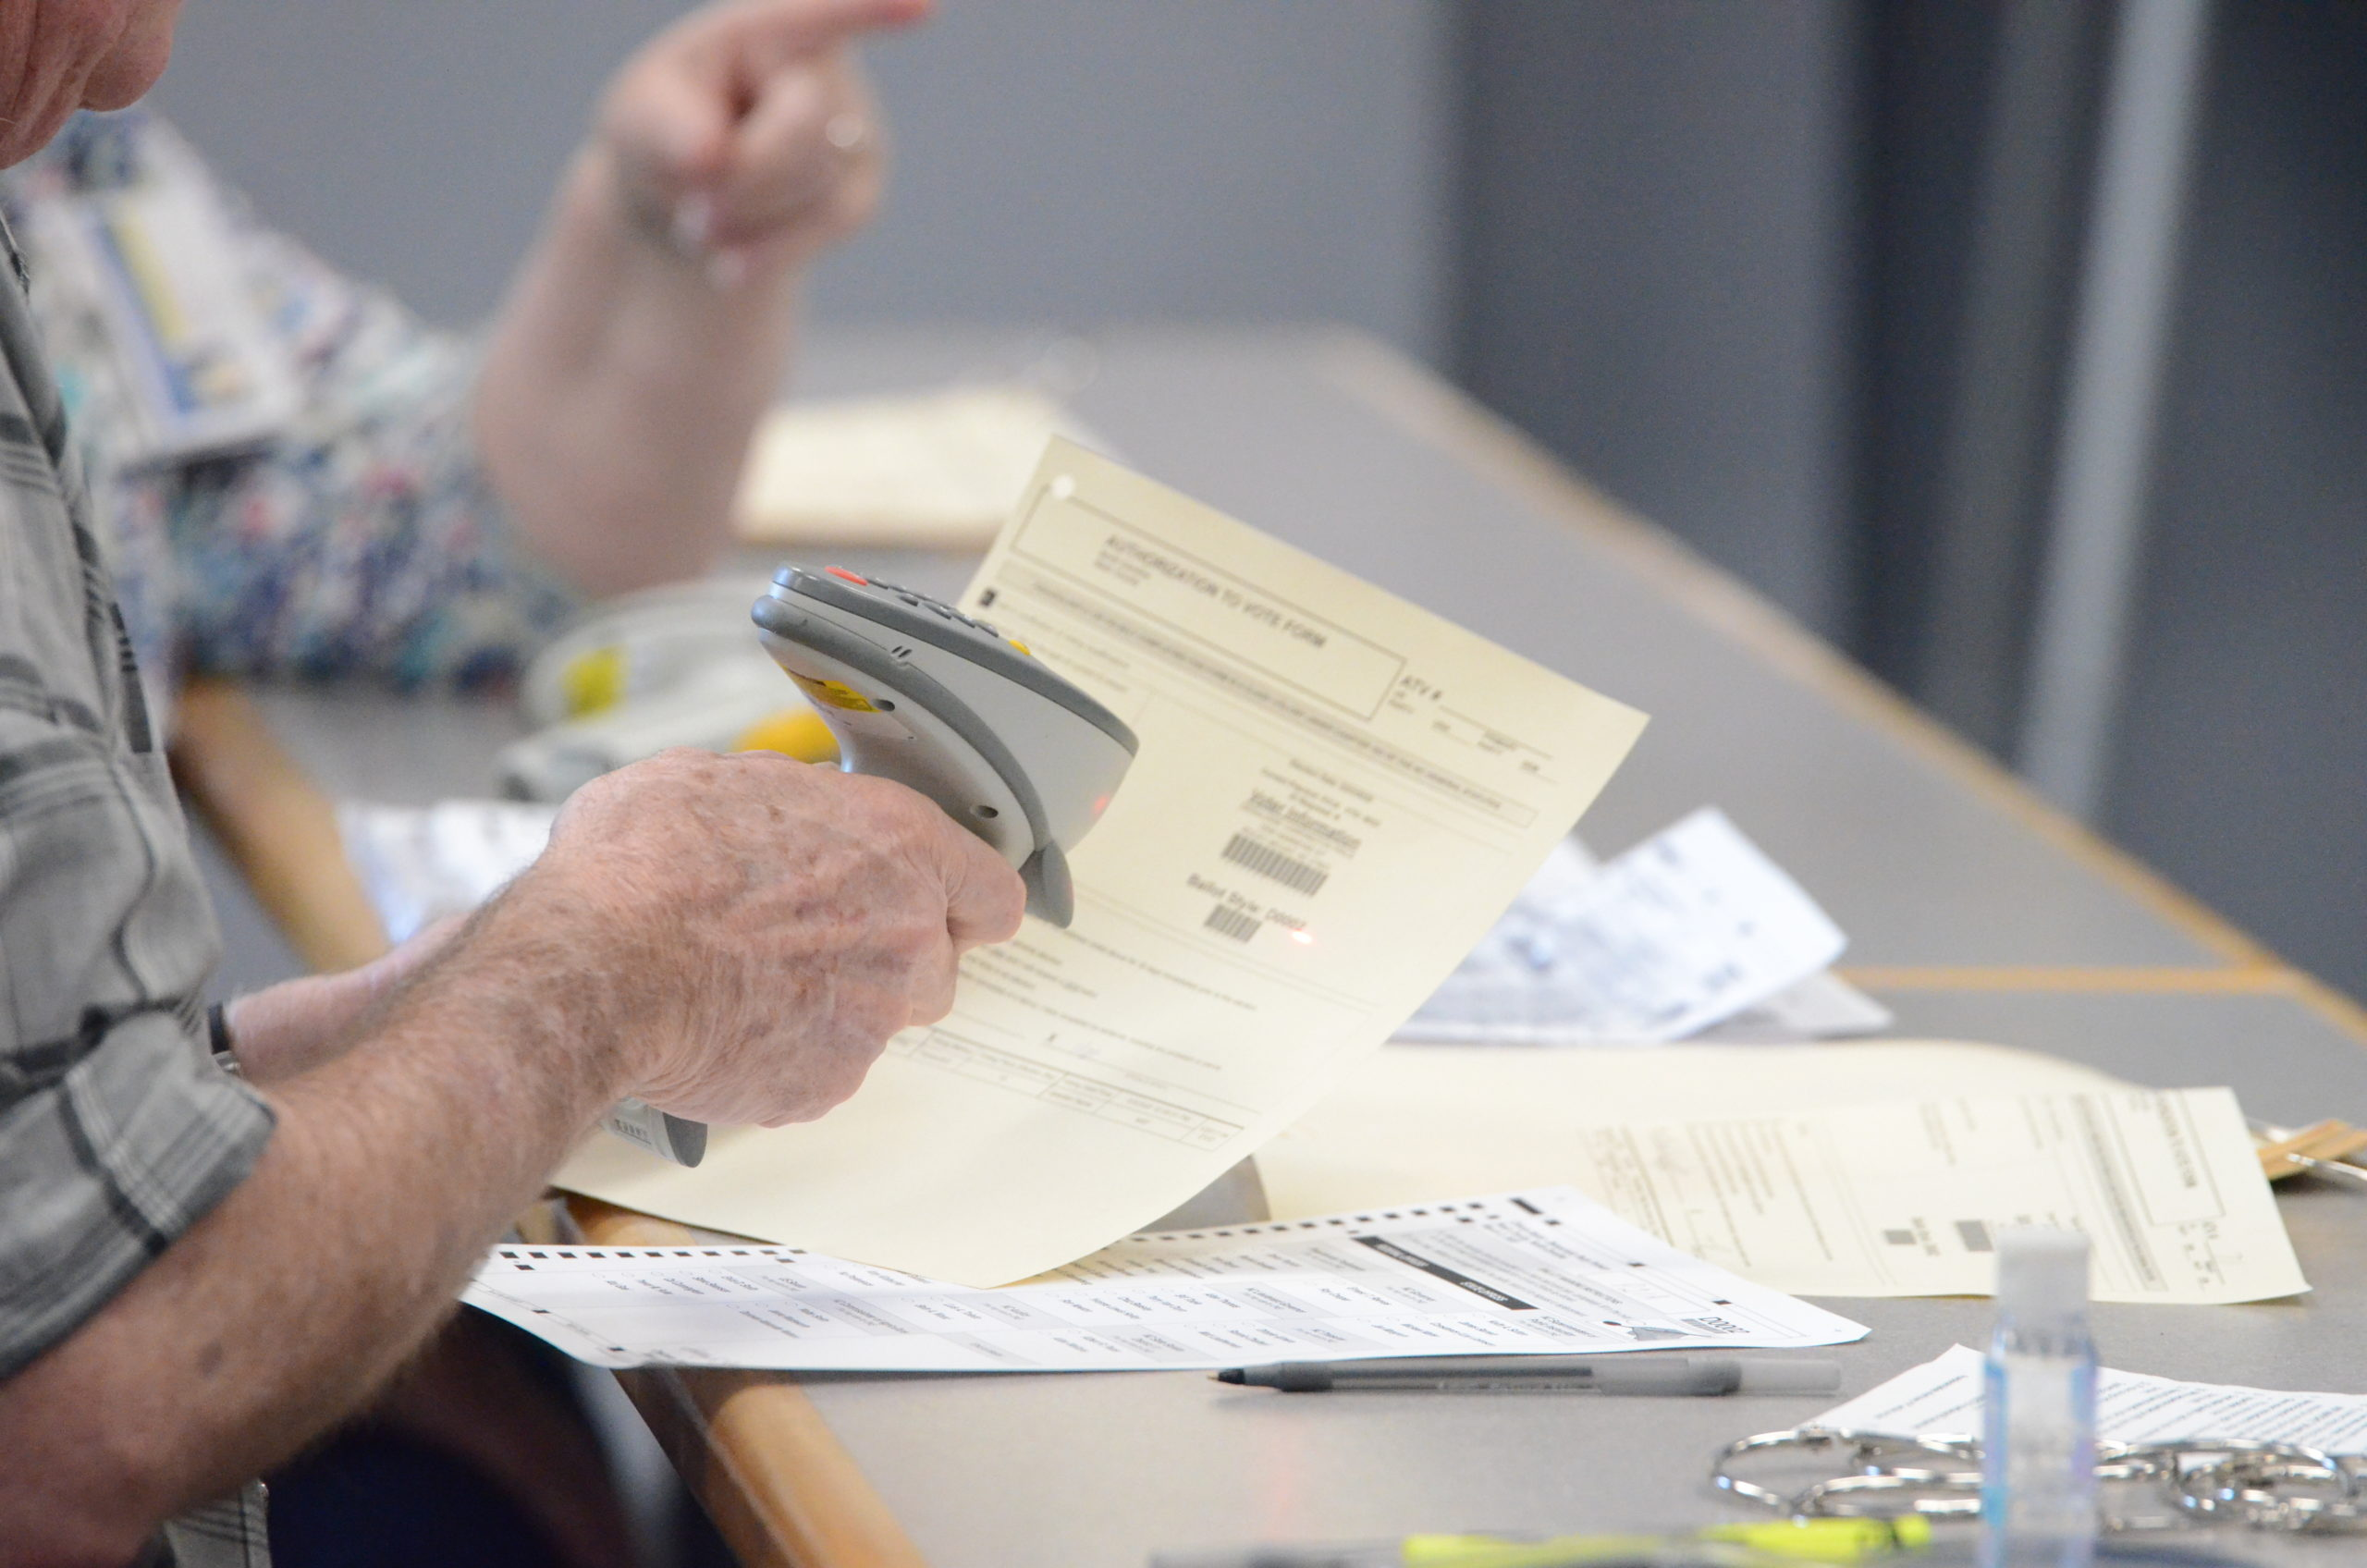 A poll worker in Nash County scans 2020 primary election voters' paperwork before giving them ballots at the Braswell Memorial Library polling place in Rocky Mount on March 3, 2020. Calvin Adkins / Carolina Public Press